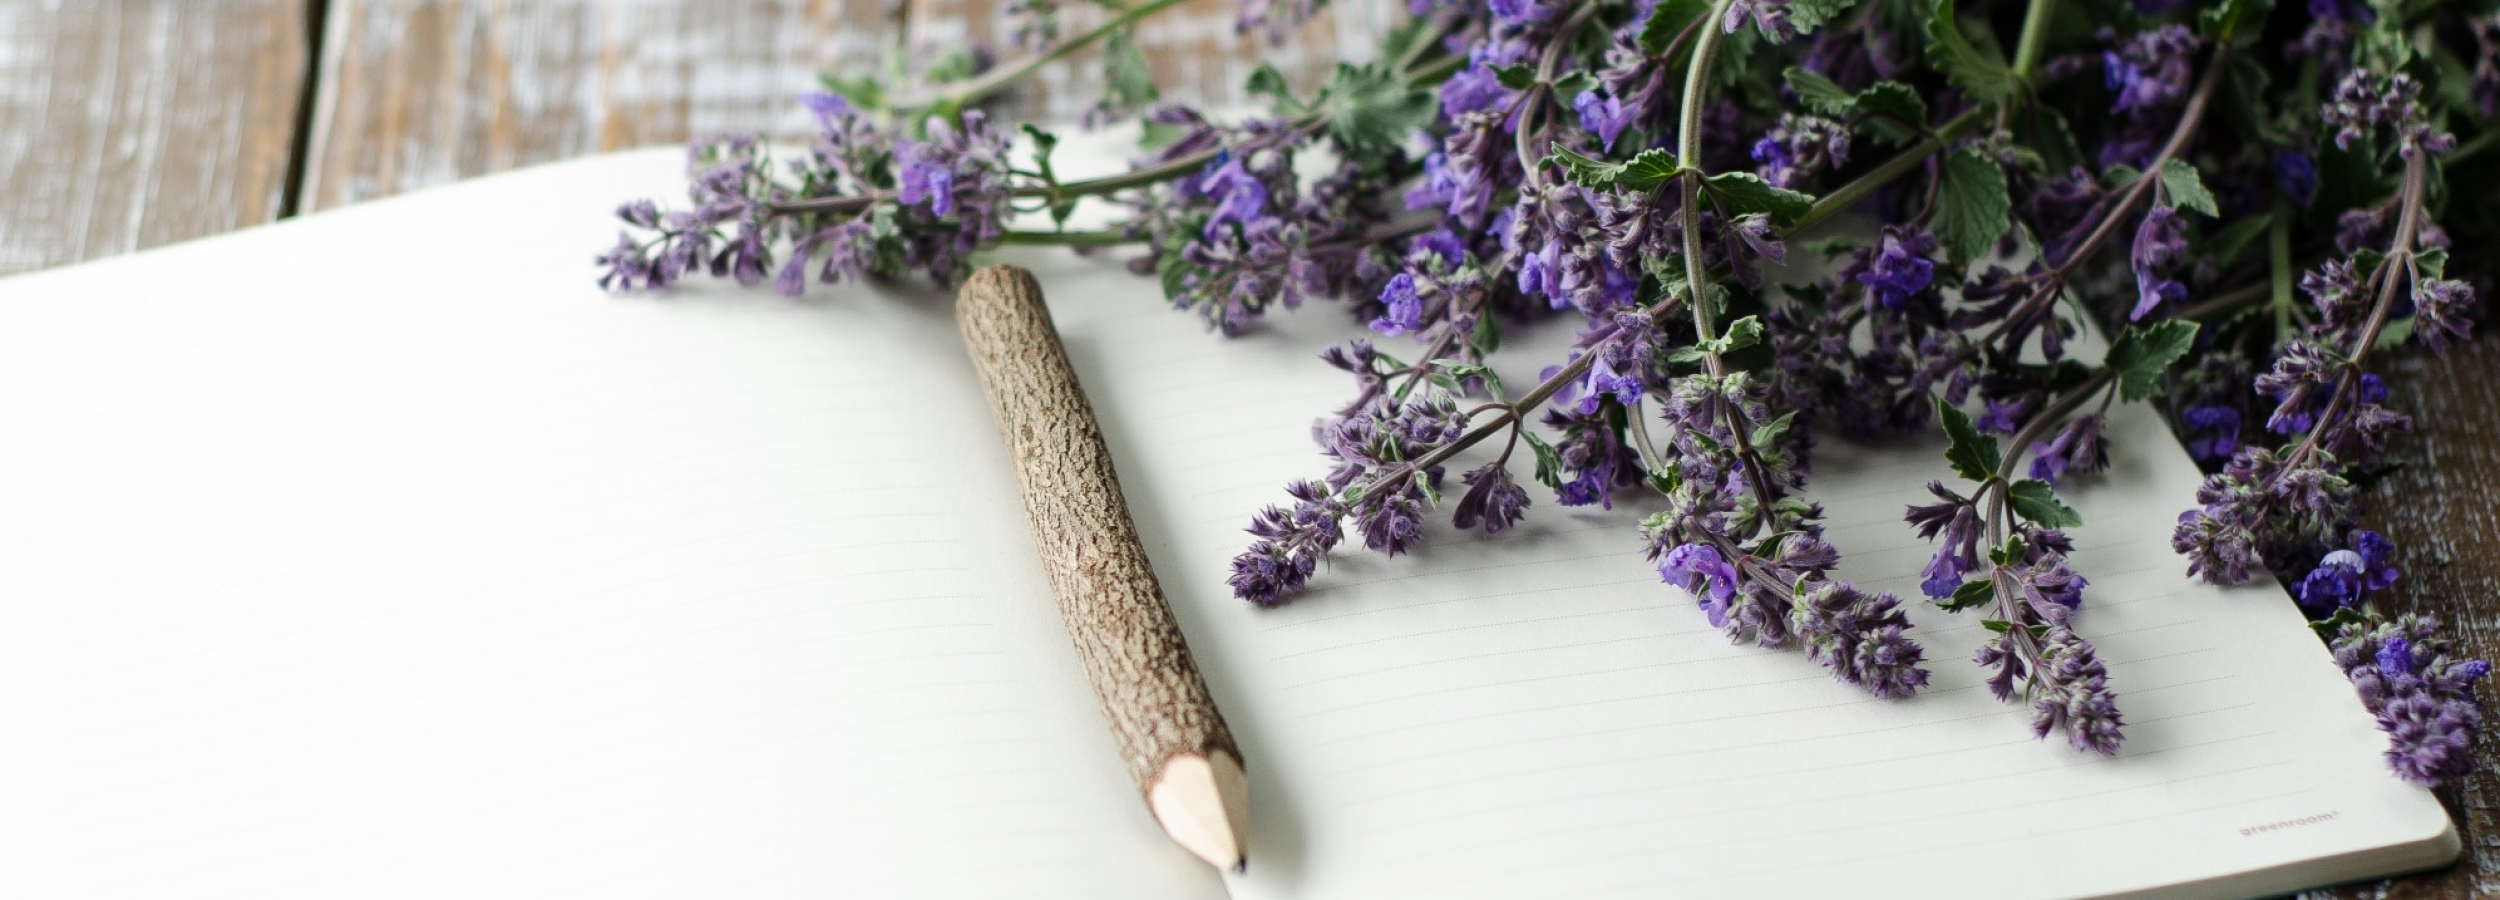 lavender journal 2000×950 b